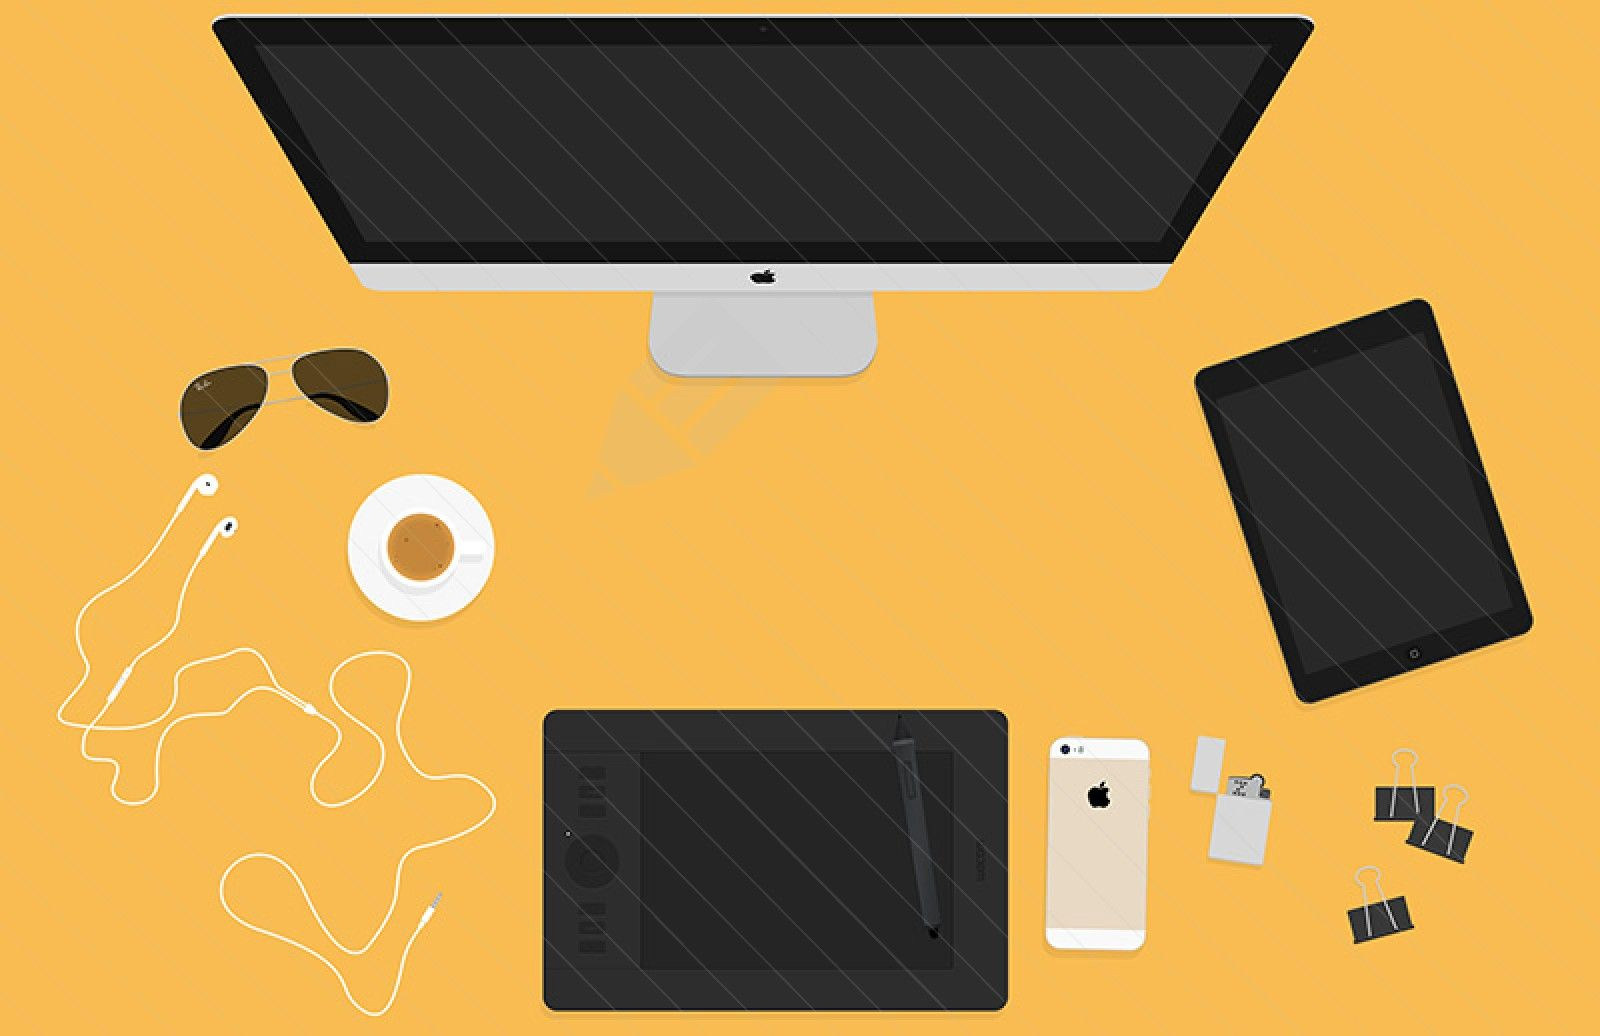 flat vector iMac, iPhone, tablet, and sunglasses